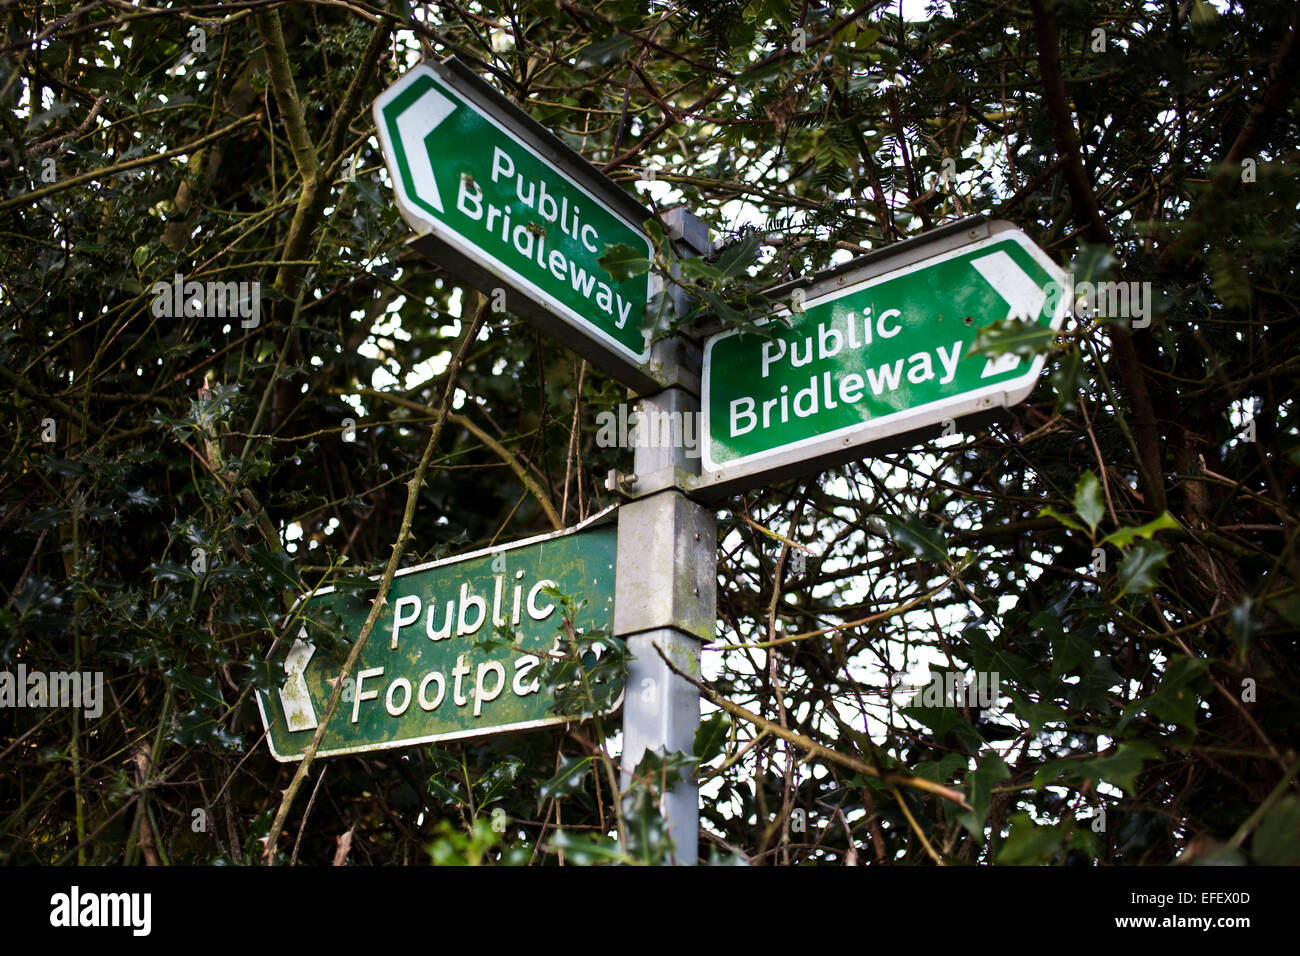 A sign showing public rights of way. - Stock Image